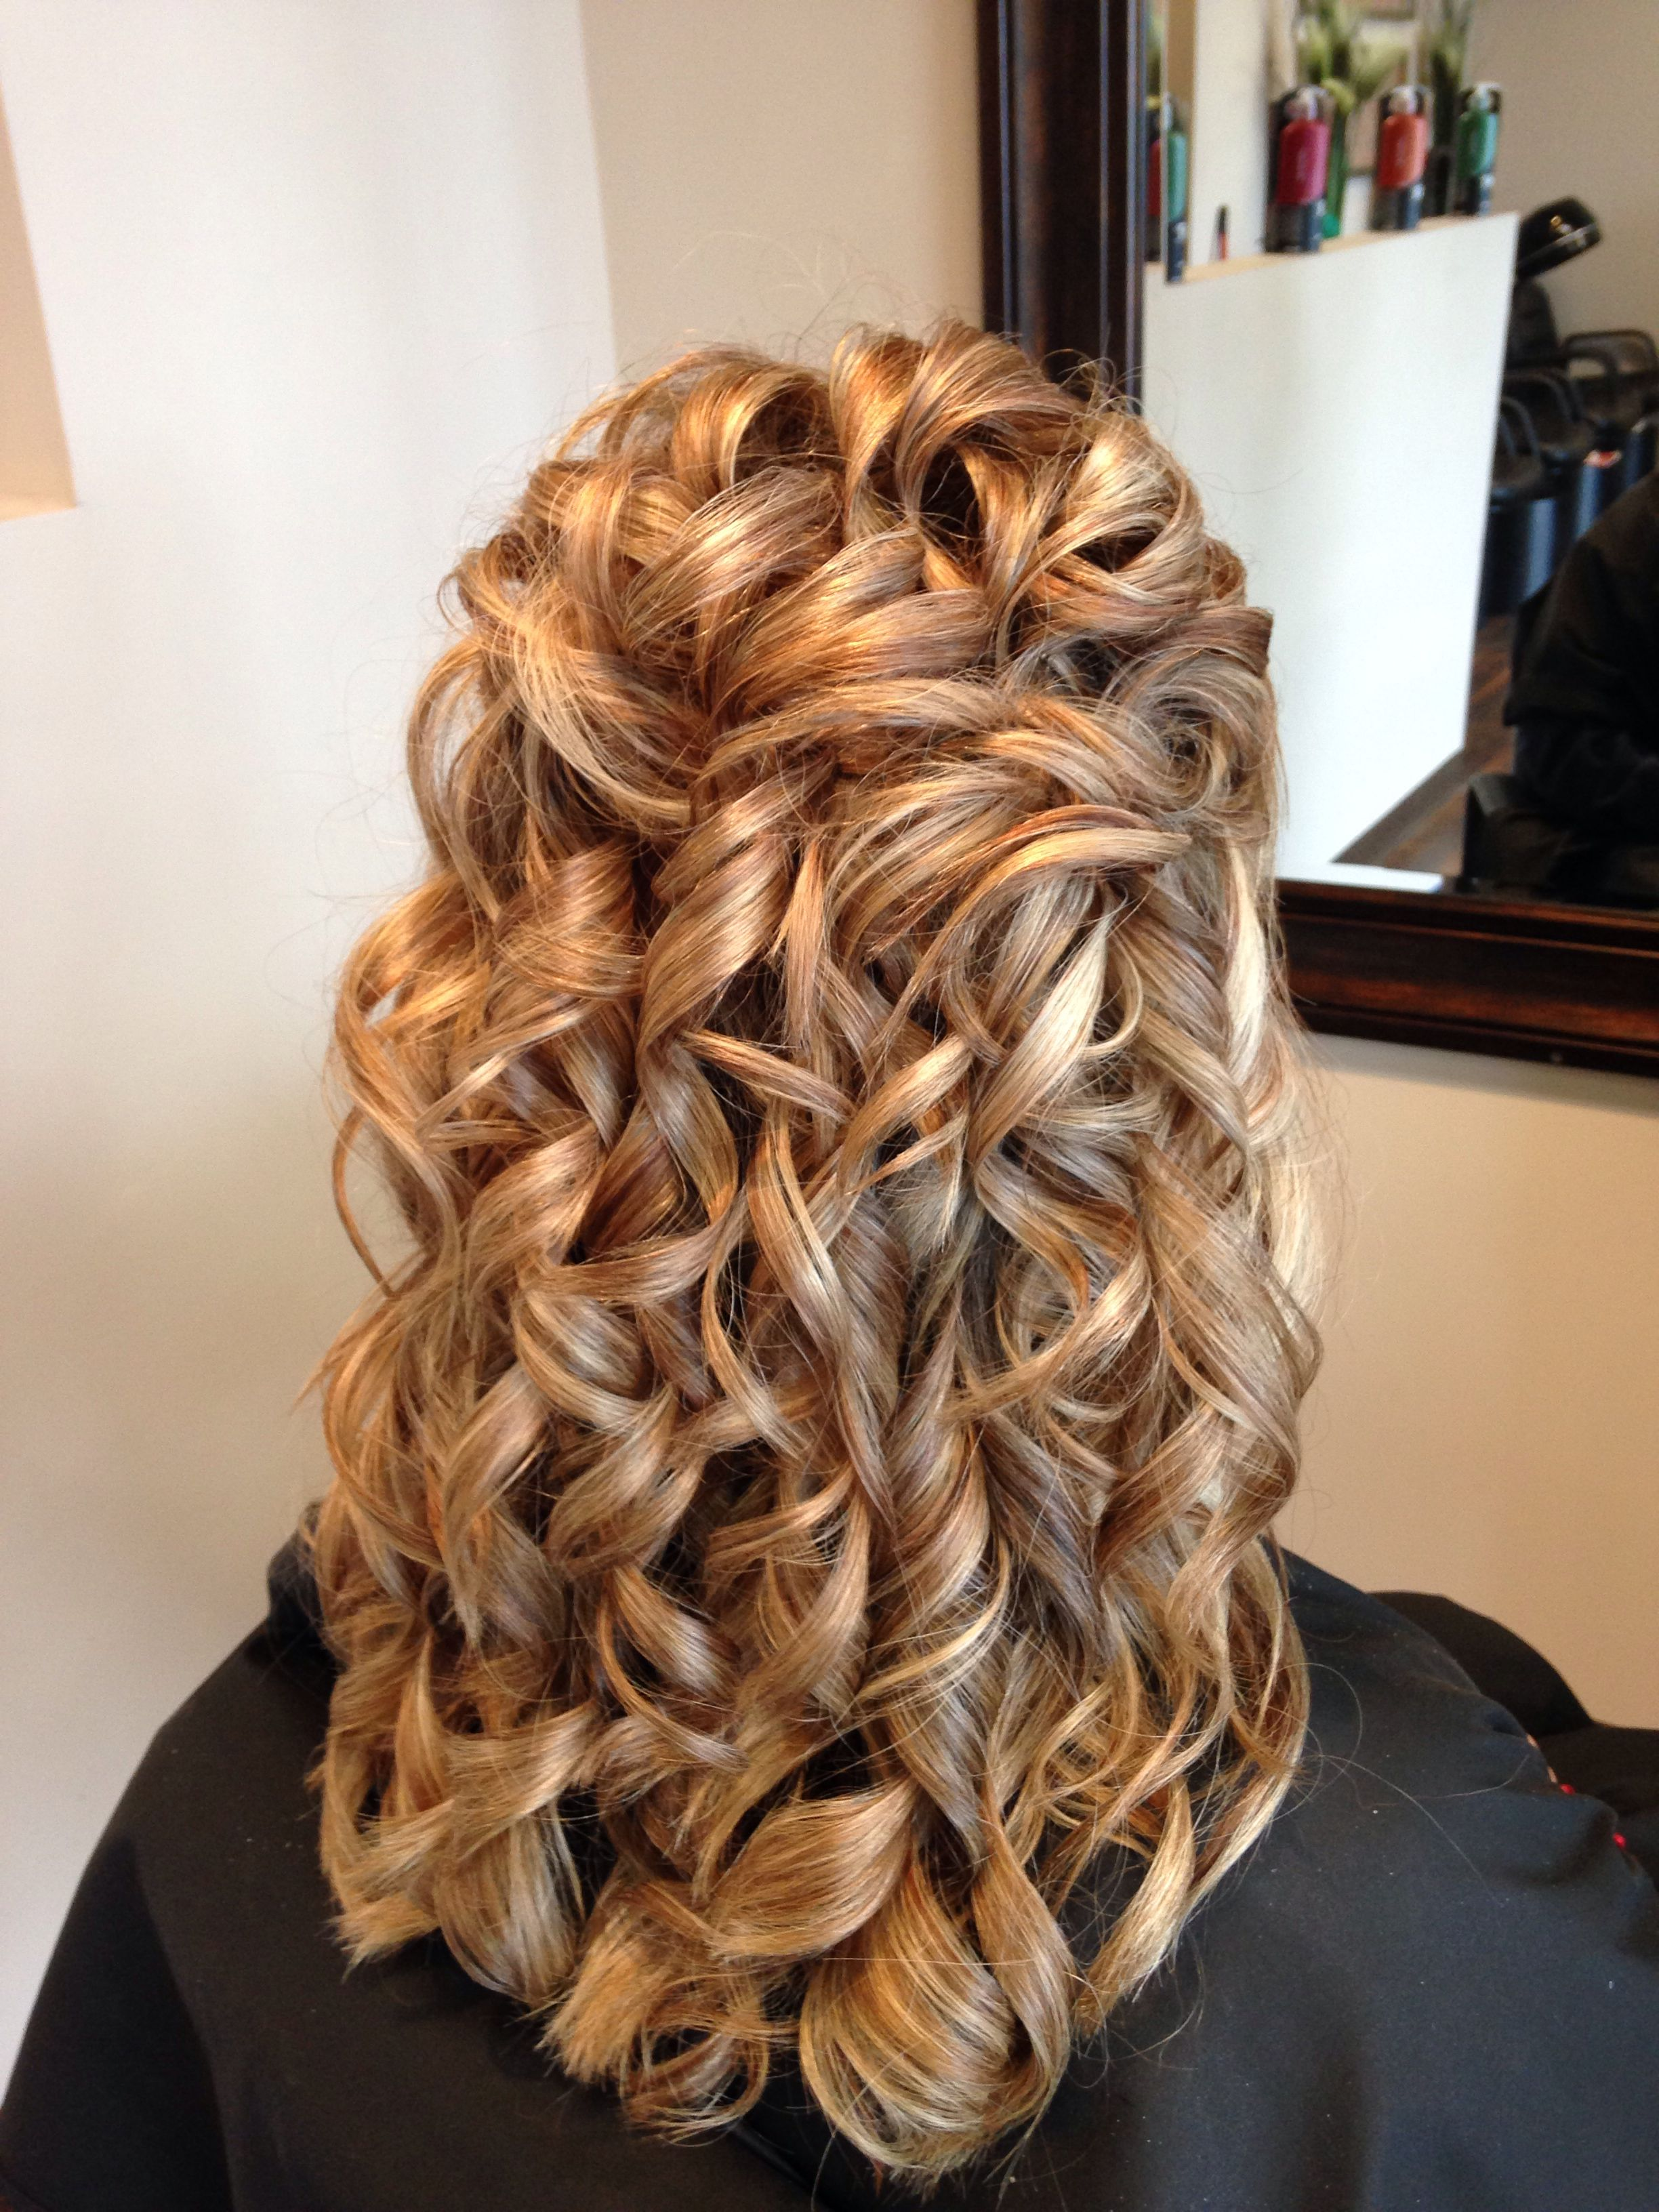 For my sons wedding, partial updo, formal, wedding ...